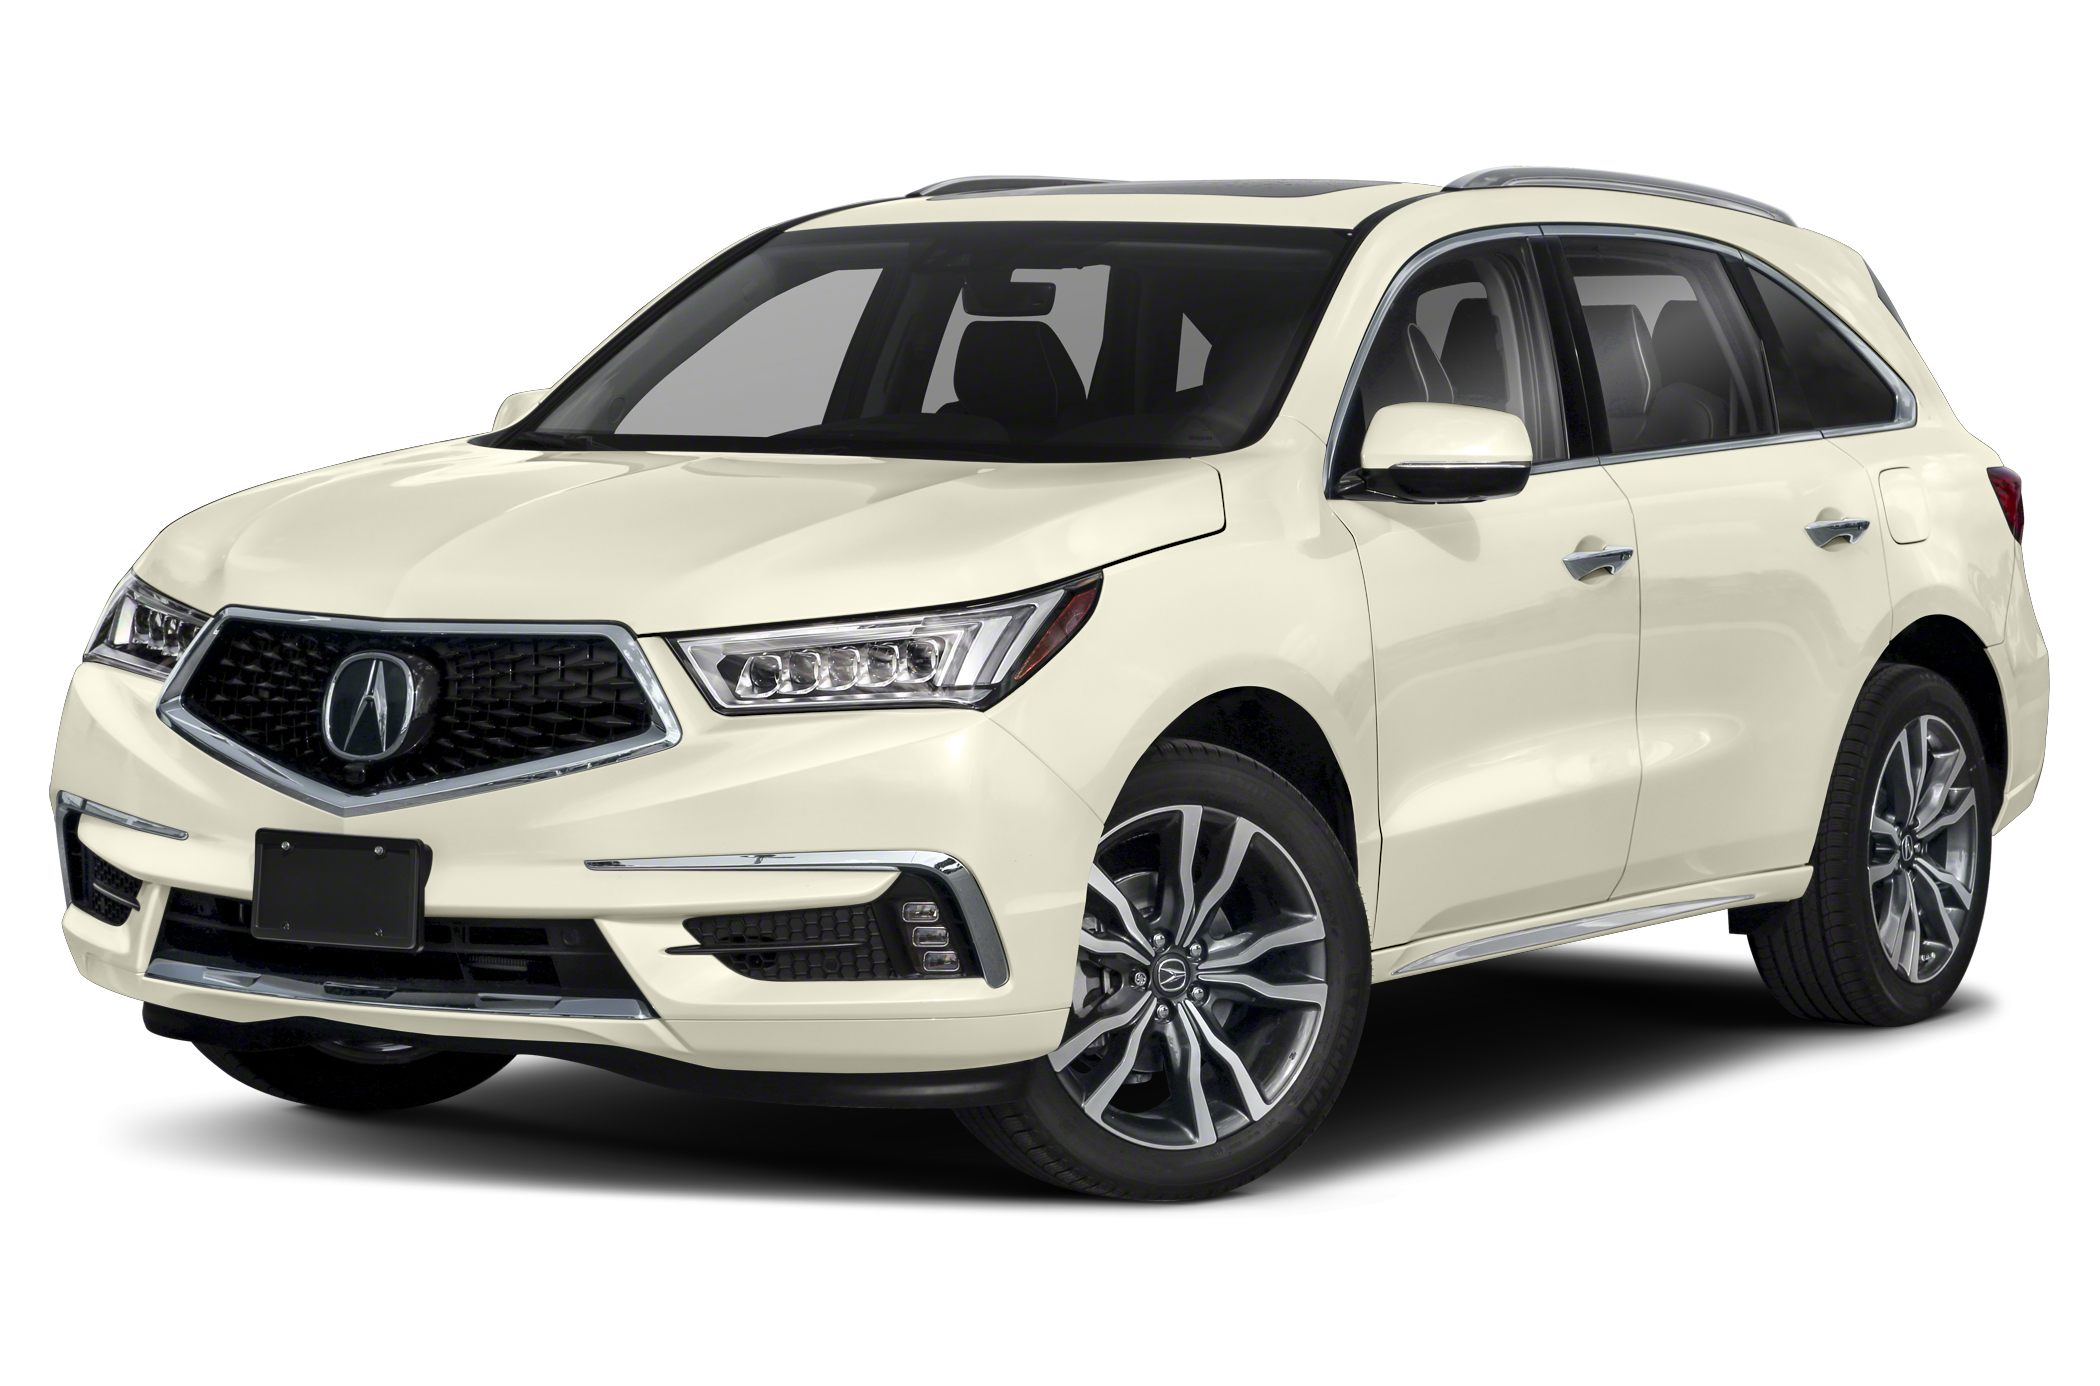 2019 Acura MDX 3 5L Advance Pkg 4dr SH AWD Information